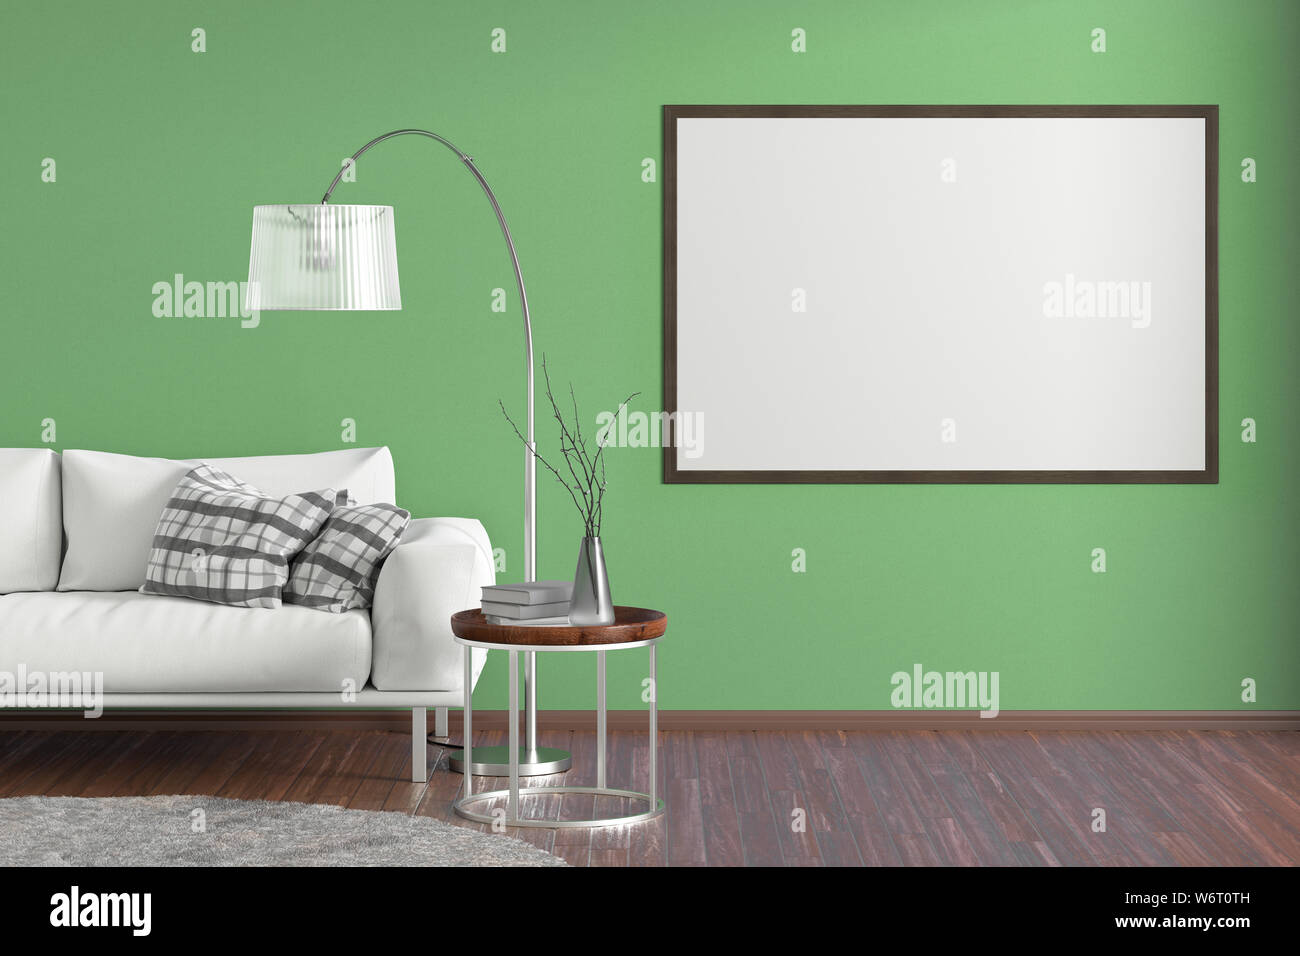 Terrific Blank Horizontal Poster On Green Wall In Interior Of Living Machost Co Dining Chair Design Ideas Machostcouk